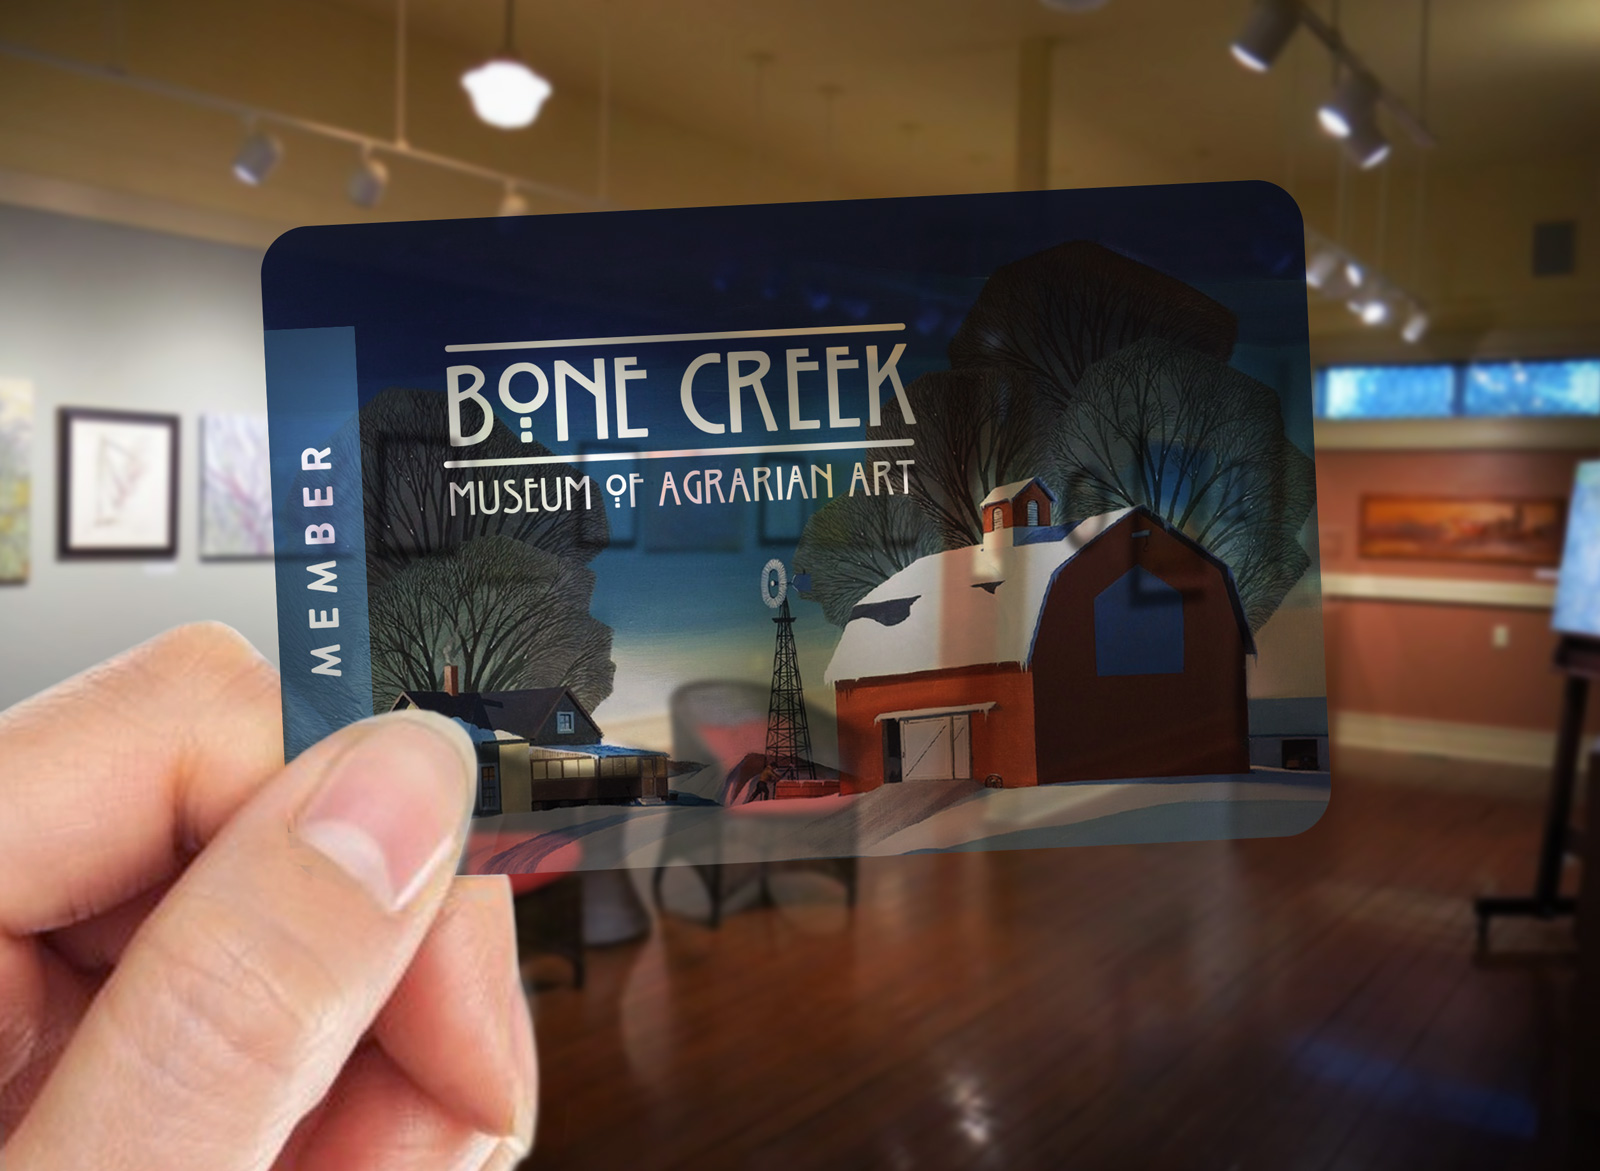 Bone-Creek-Museum-membership-card-gallery